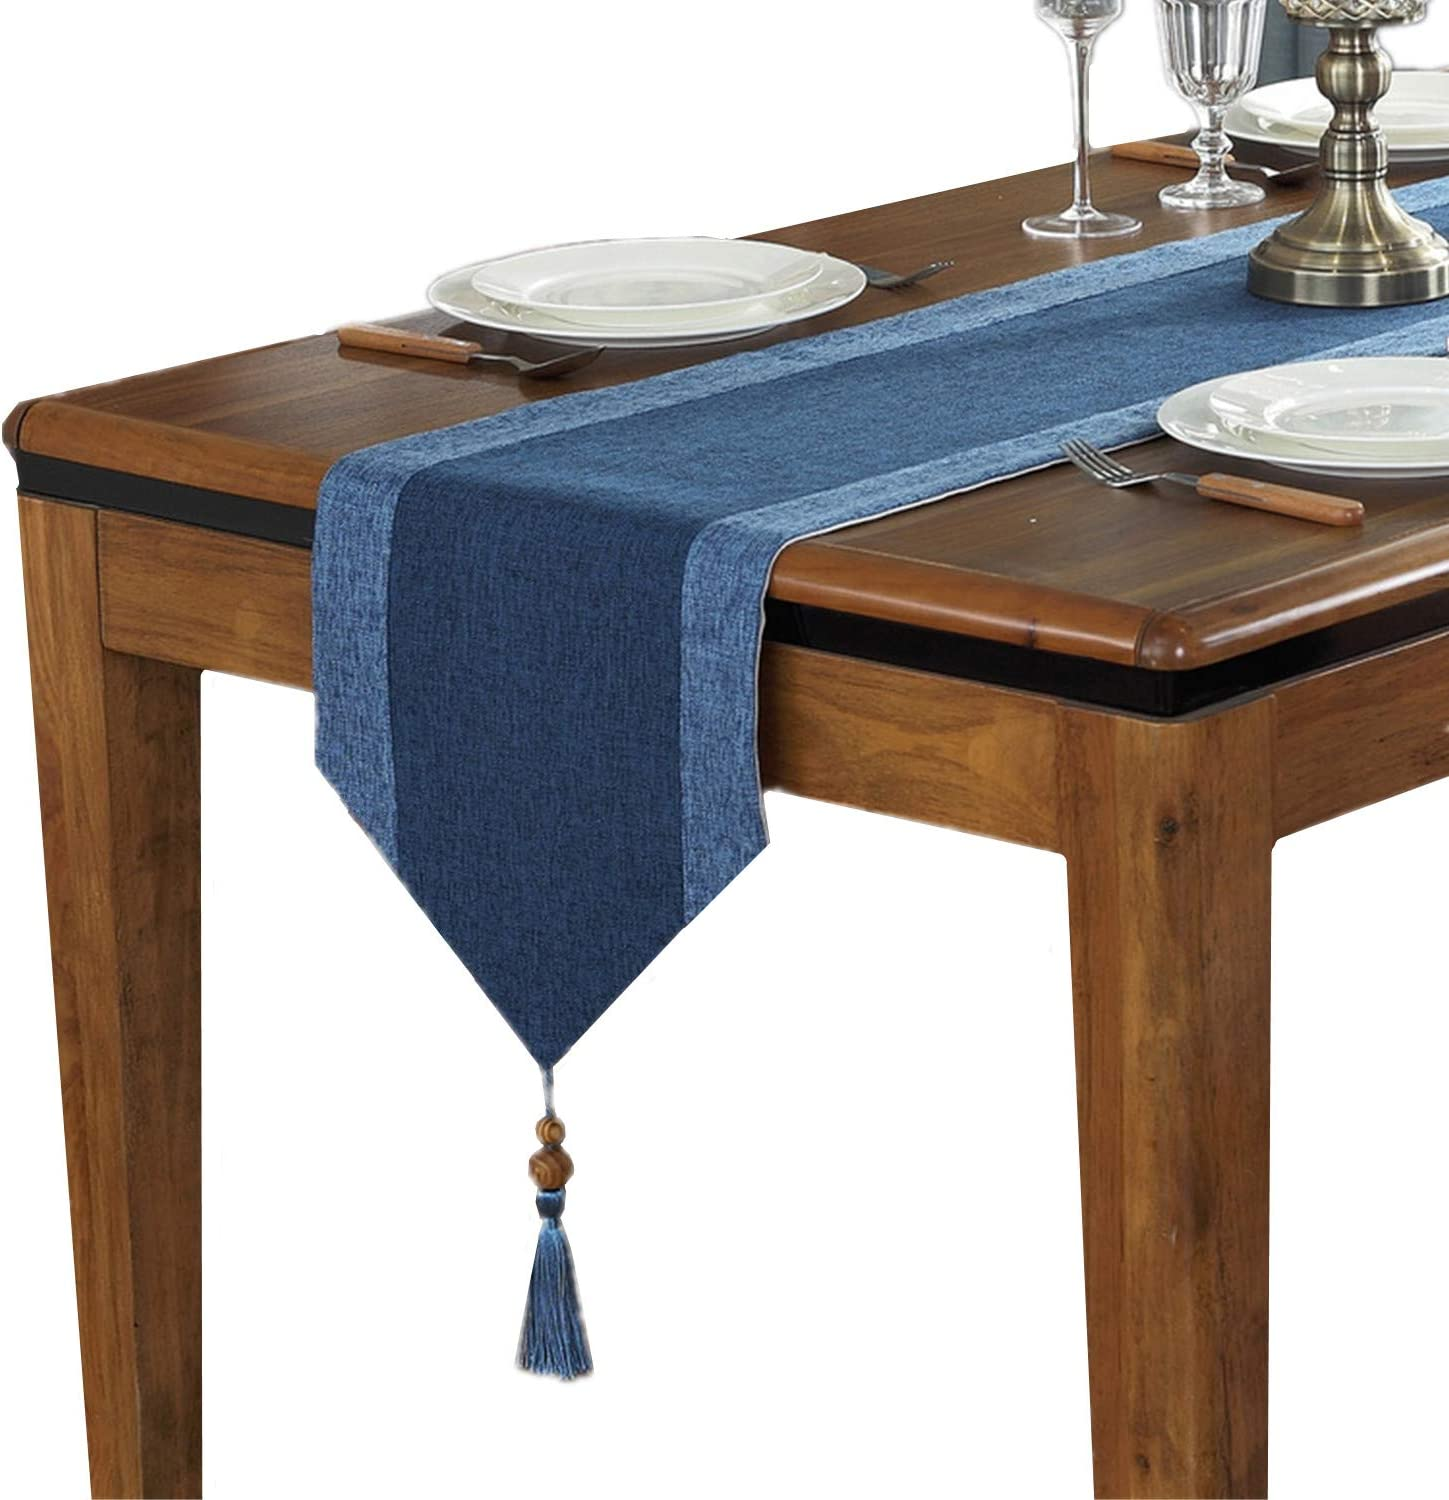 Cotton Linen Table Runner With Tassels For Dining Table Decoration Home Decor 13 X 82 Blue Home Kitchen